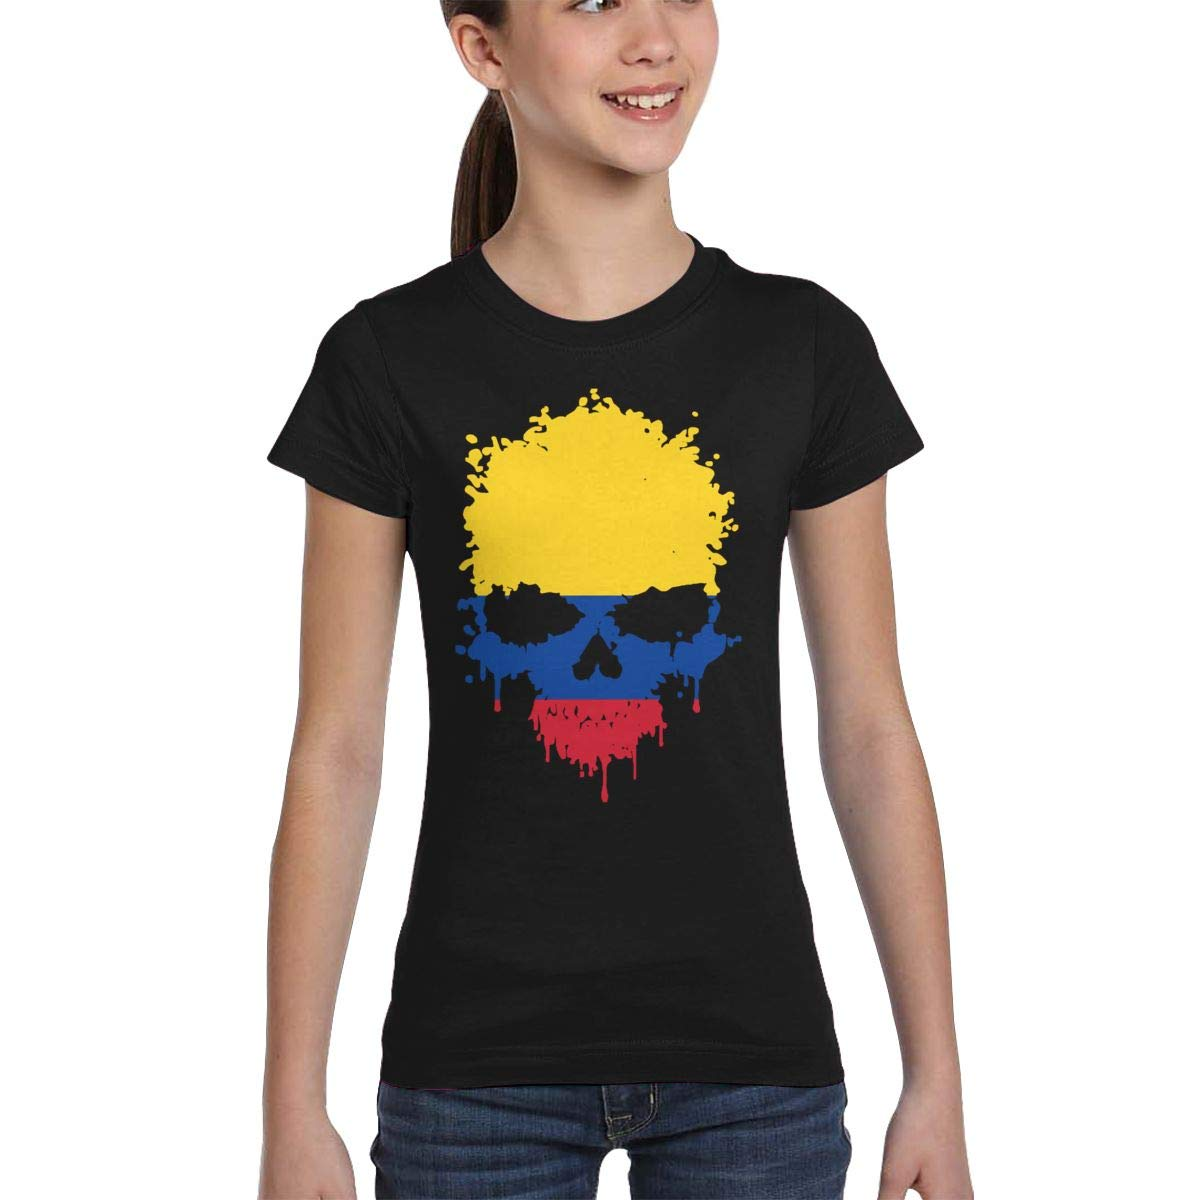 L6Nv4o@A Girls Short Sleeve Colombia Skull T-Shirts XS-XL Fashion Blouse Clothes